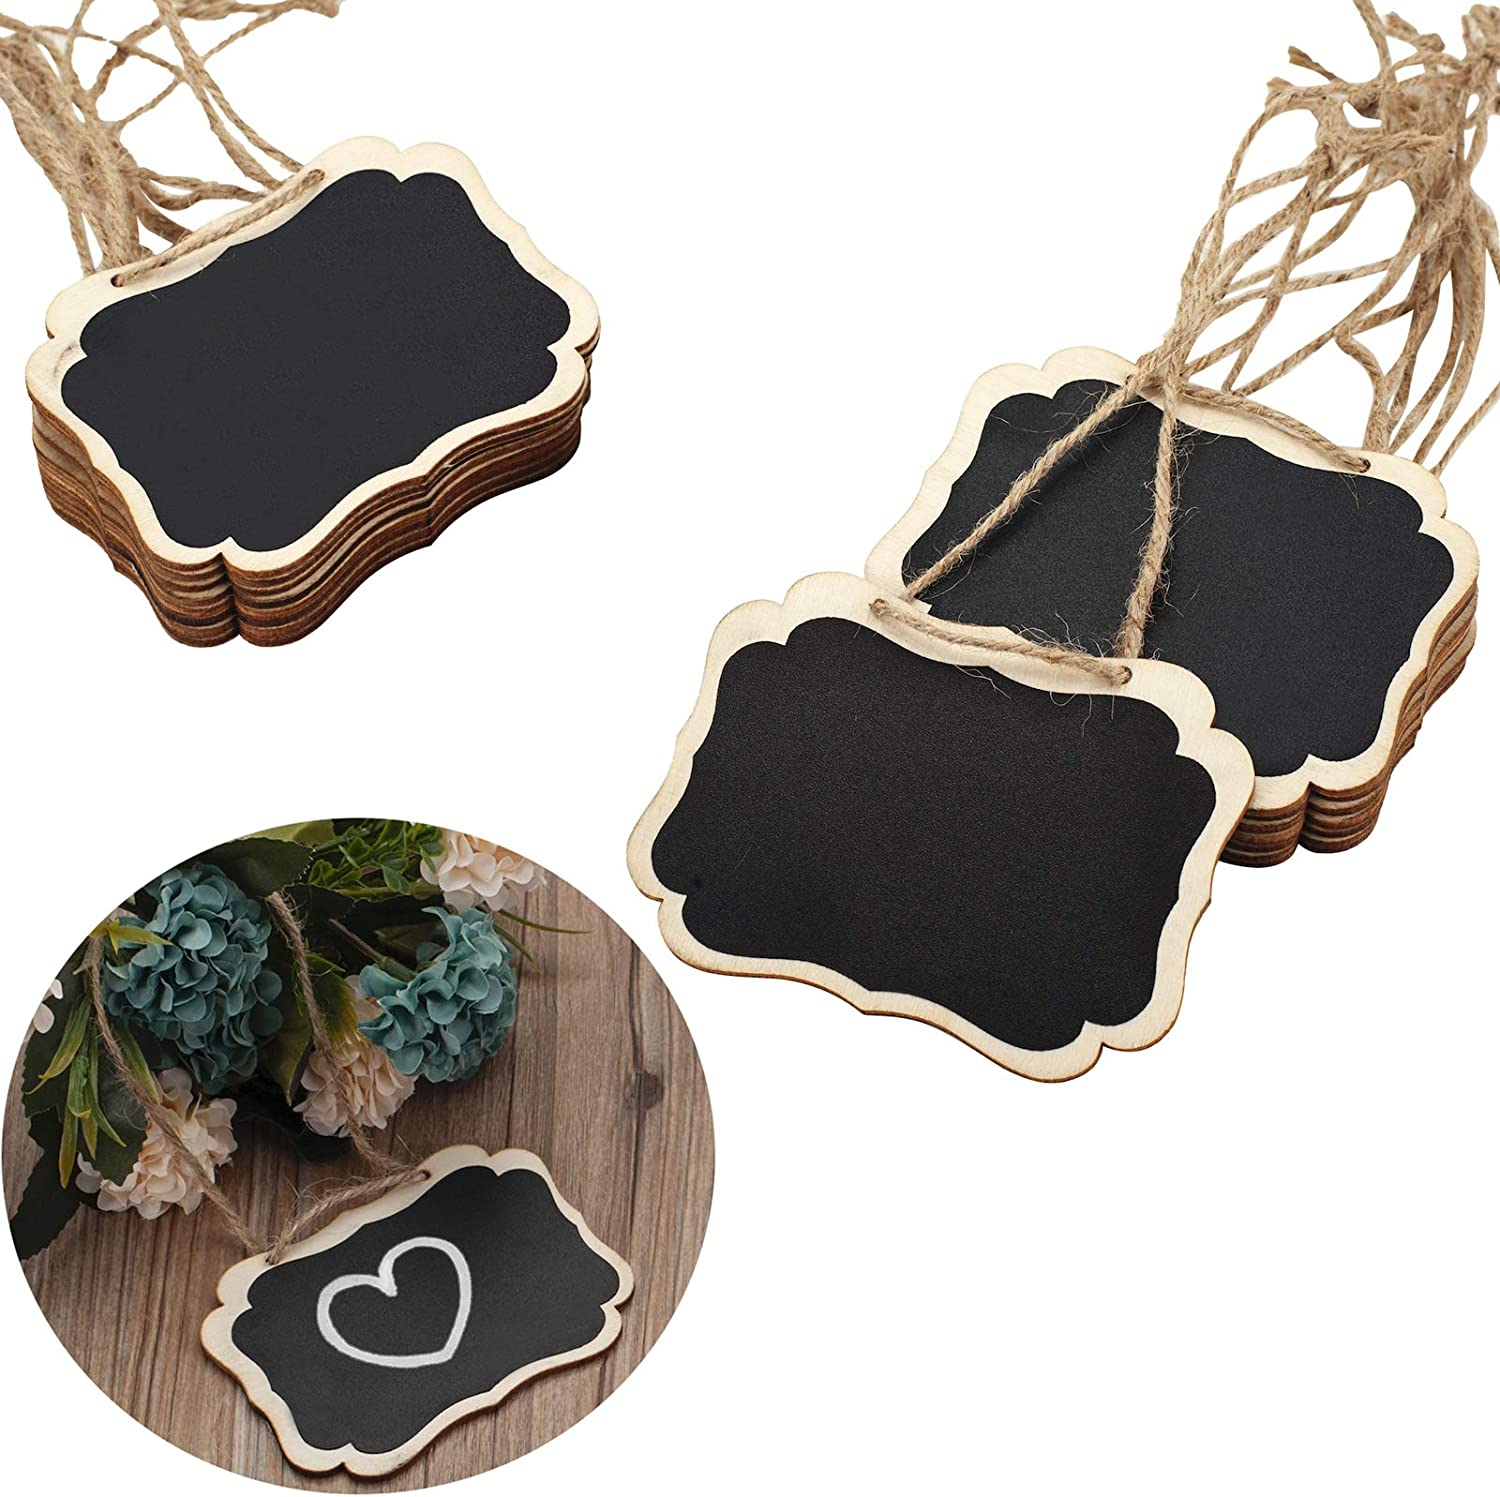 16 Pack Chalkboard Tags with Hanging String, Double Sided Blackboard Wooden Mini Chalkboard Signs, Hanging Chalkboard Labels Erasable Message Board Signs for Wedding or Party Decorations, Food Tags